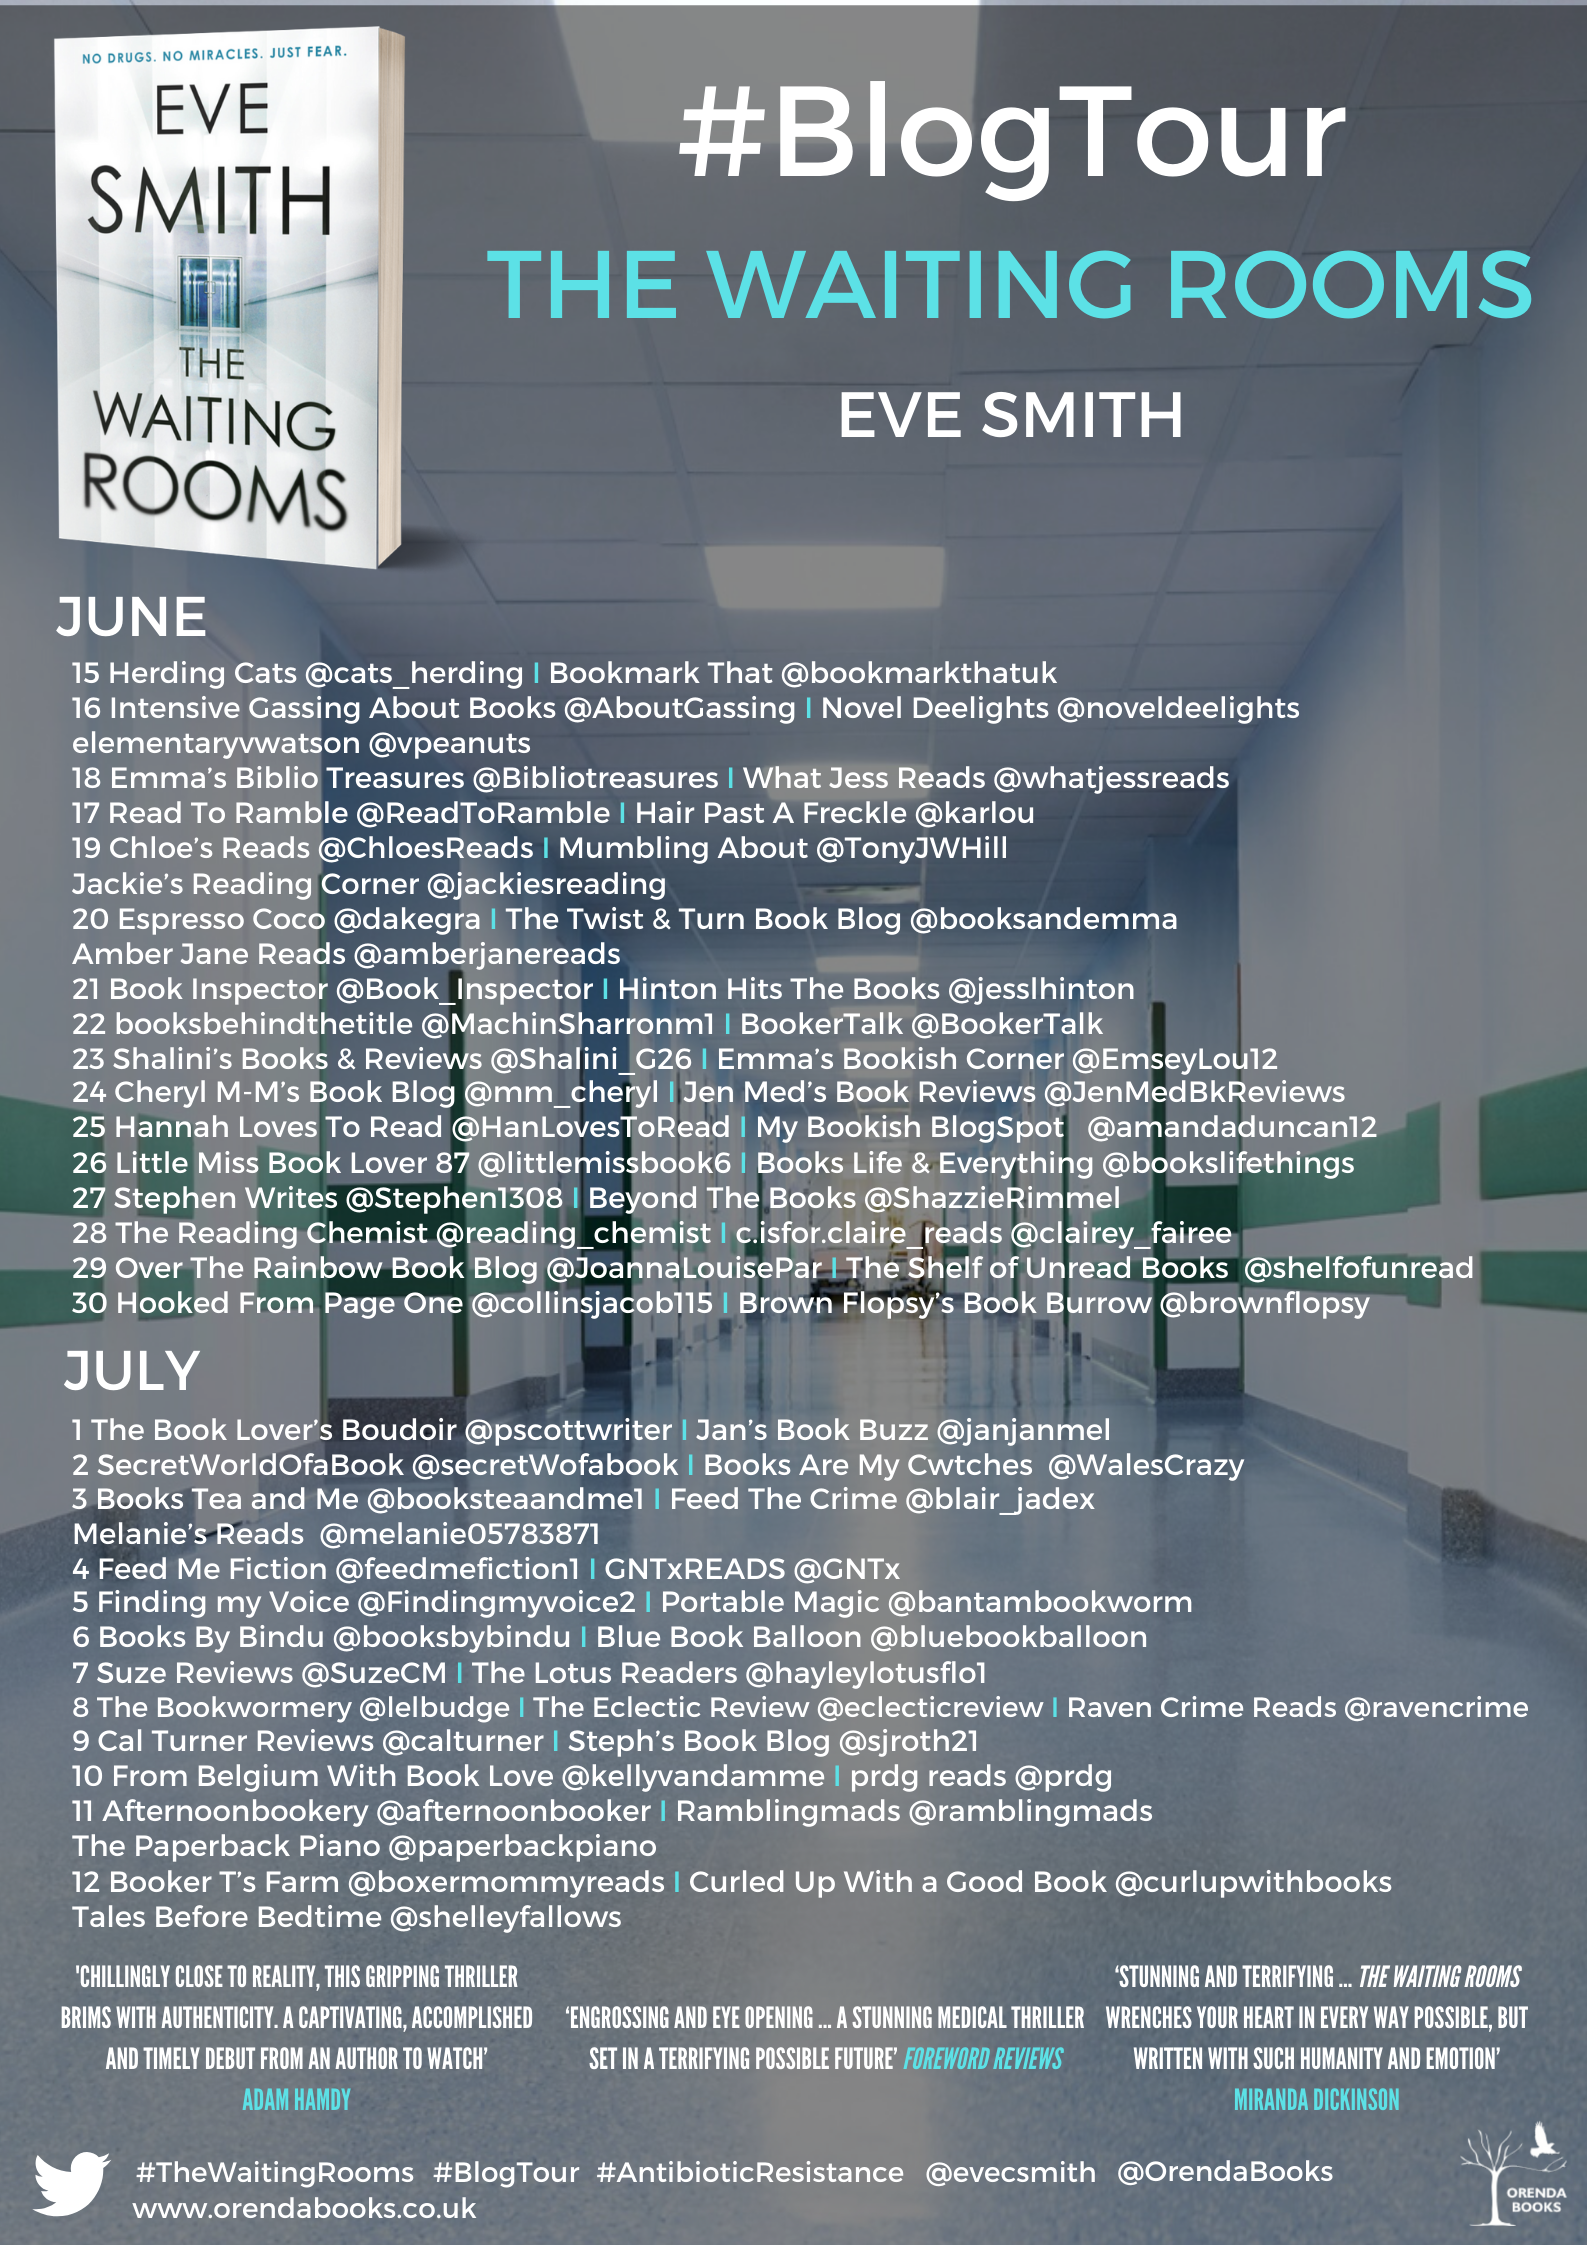 FINAL The Waiting Rooms BT Poster